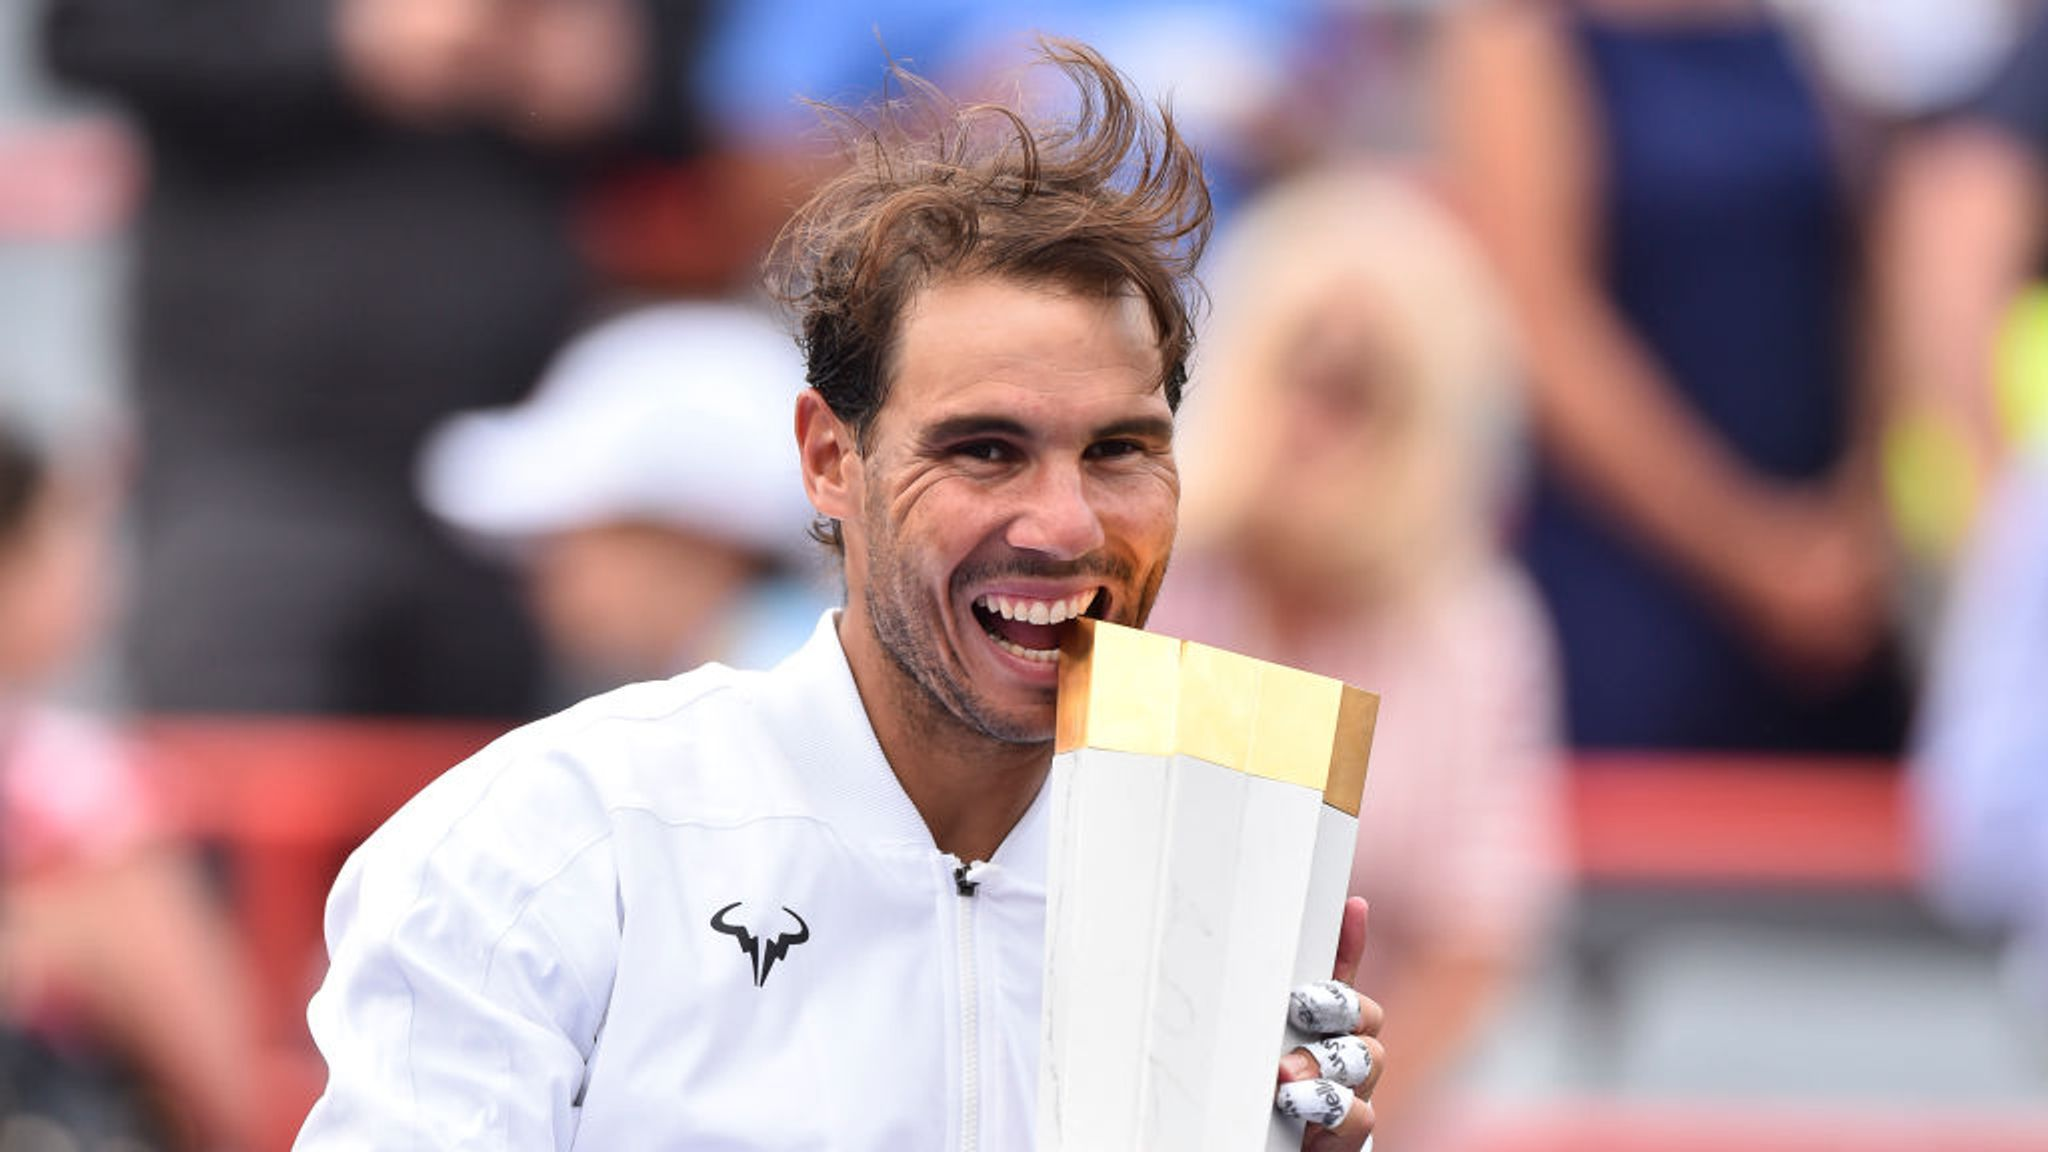 Rafael Nadal roars to Rogers Cup title in Montreal